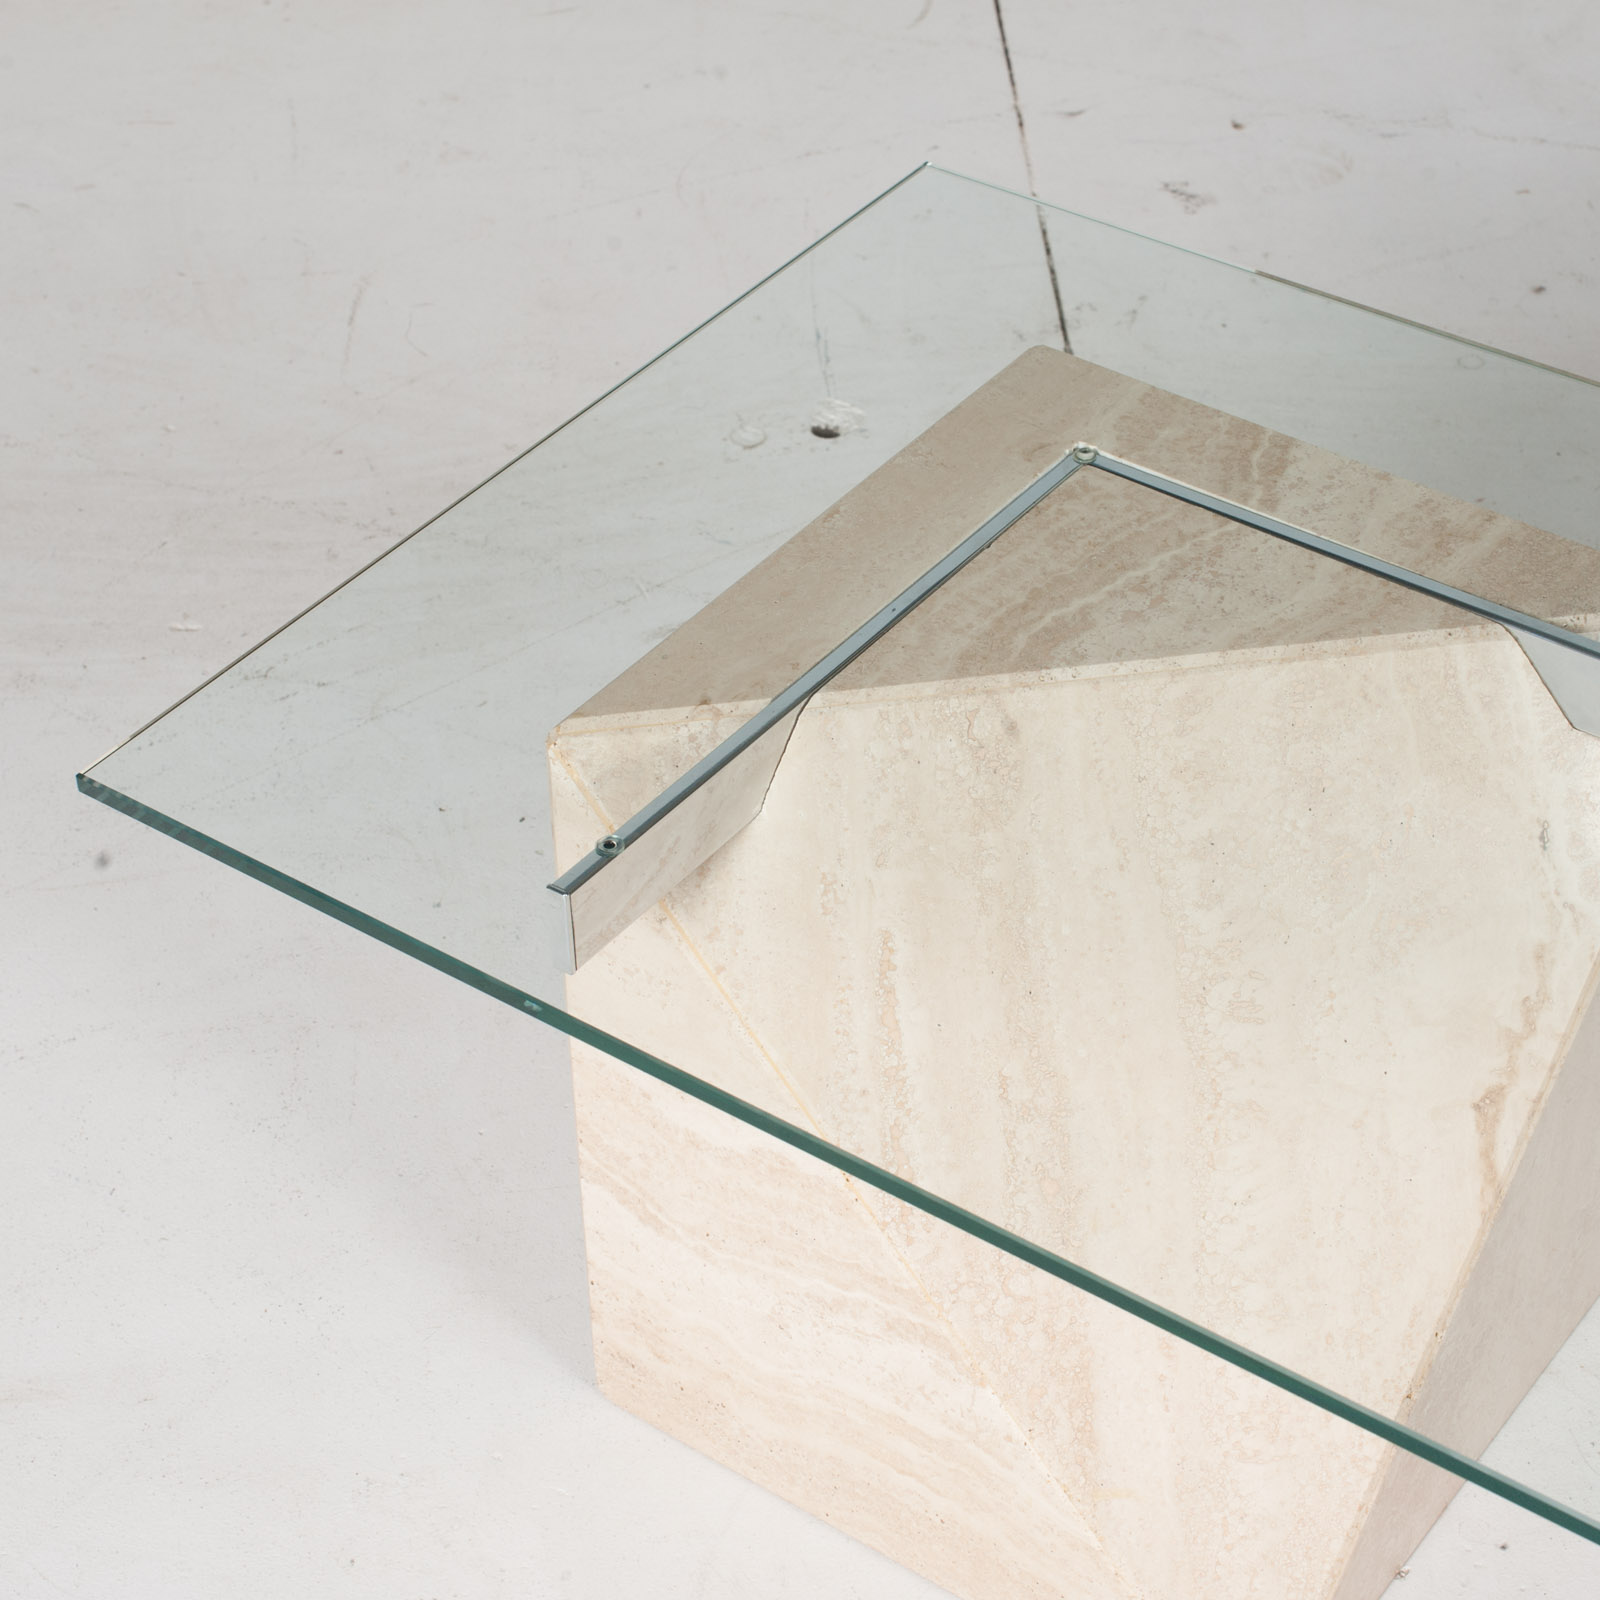 Coffee Table By Artedi In Travertine, Cantilevered Glass And Chrome, 1970s, Italy6